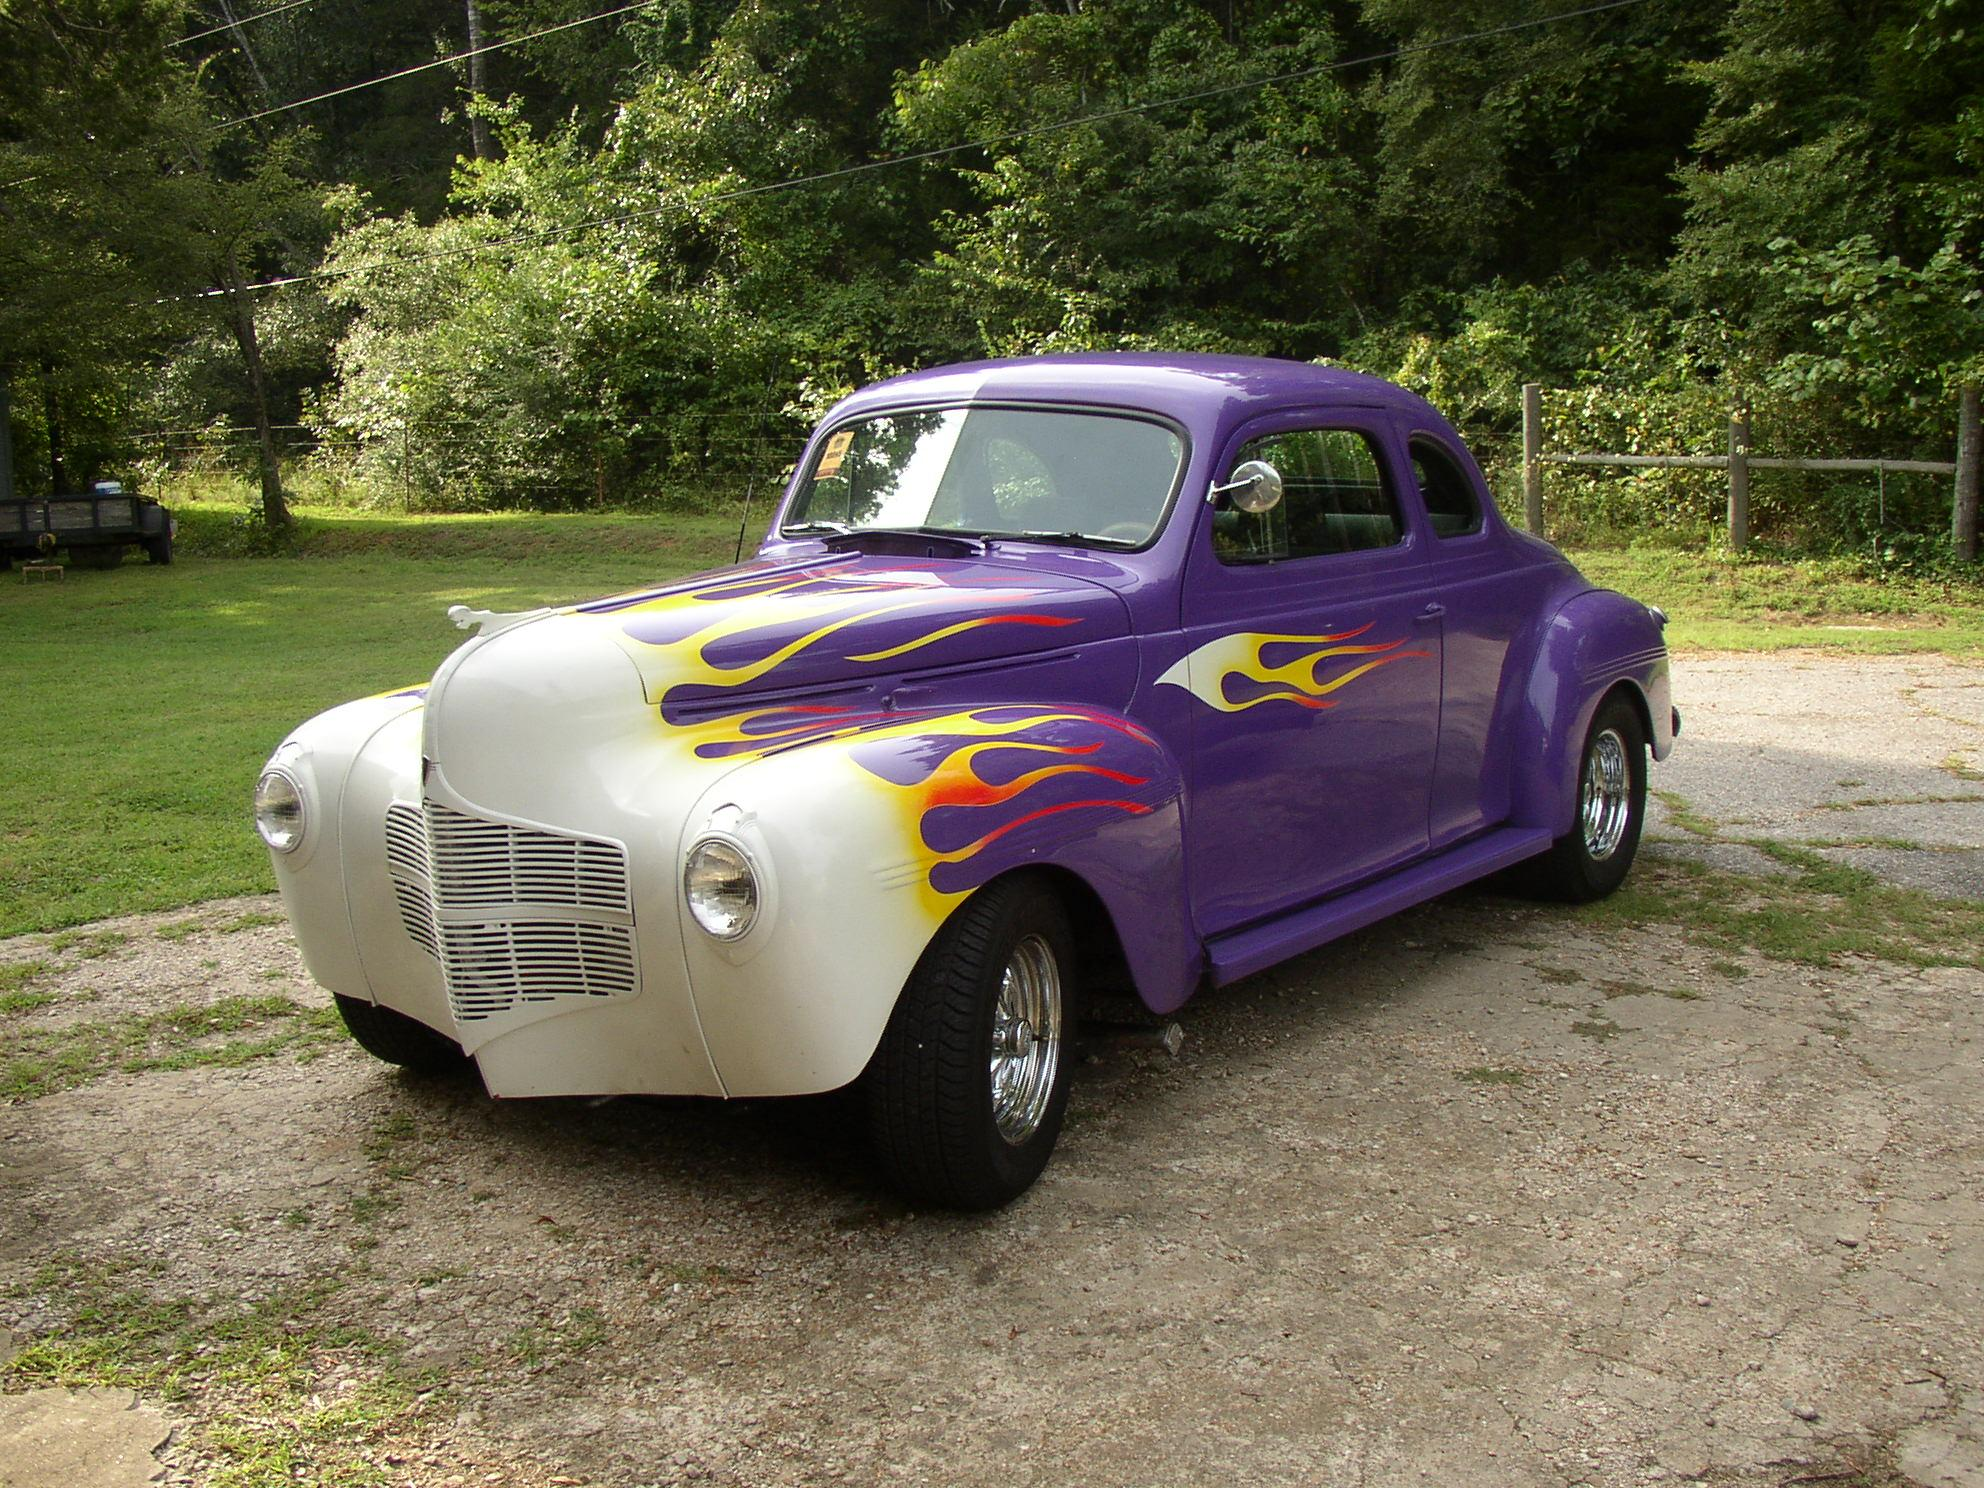 Nice Jalopy Cars For Sale Crest - Classic Cars Ideas - boiq.info